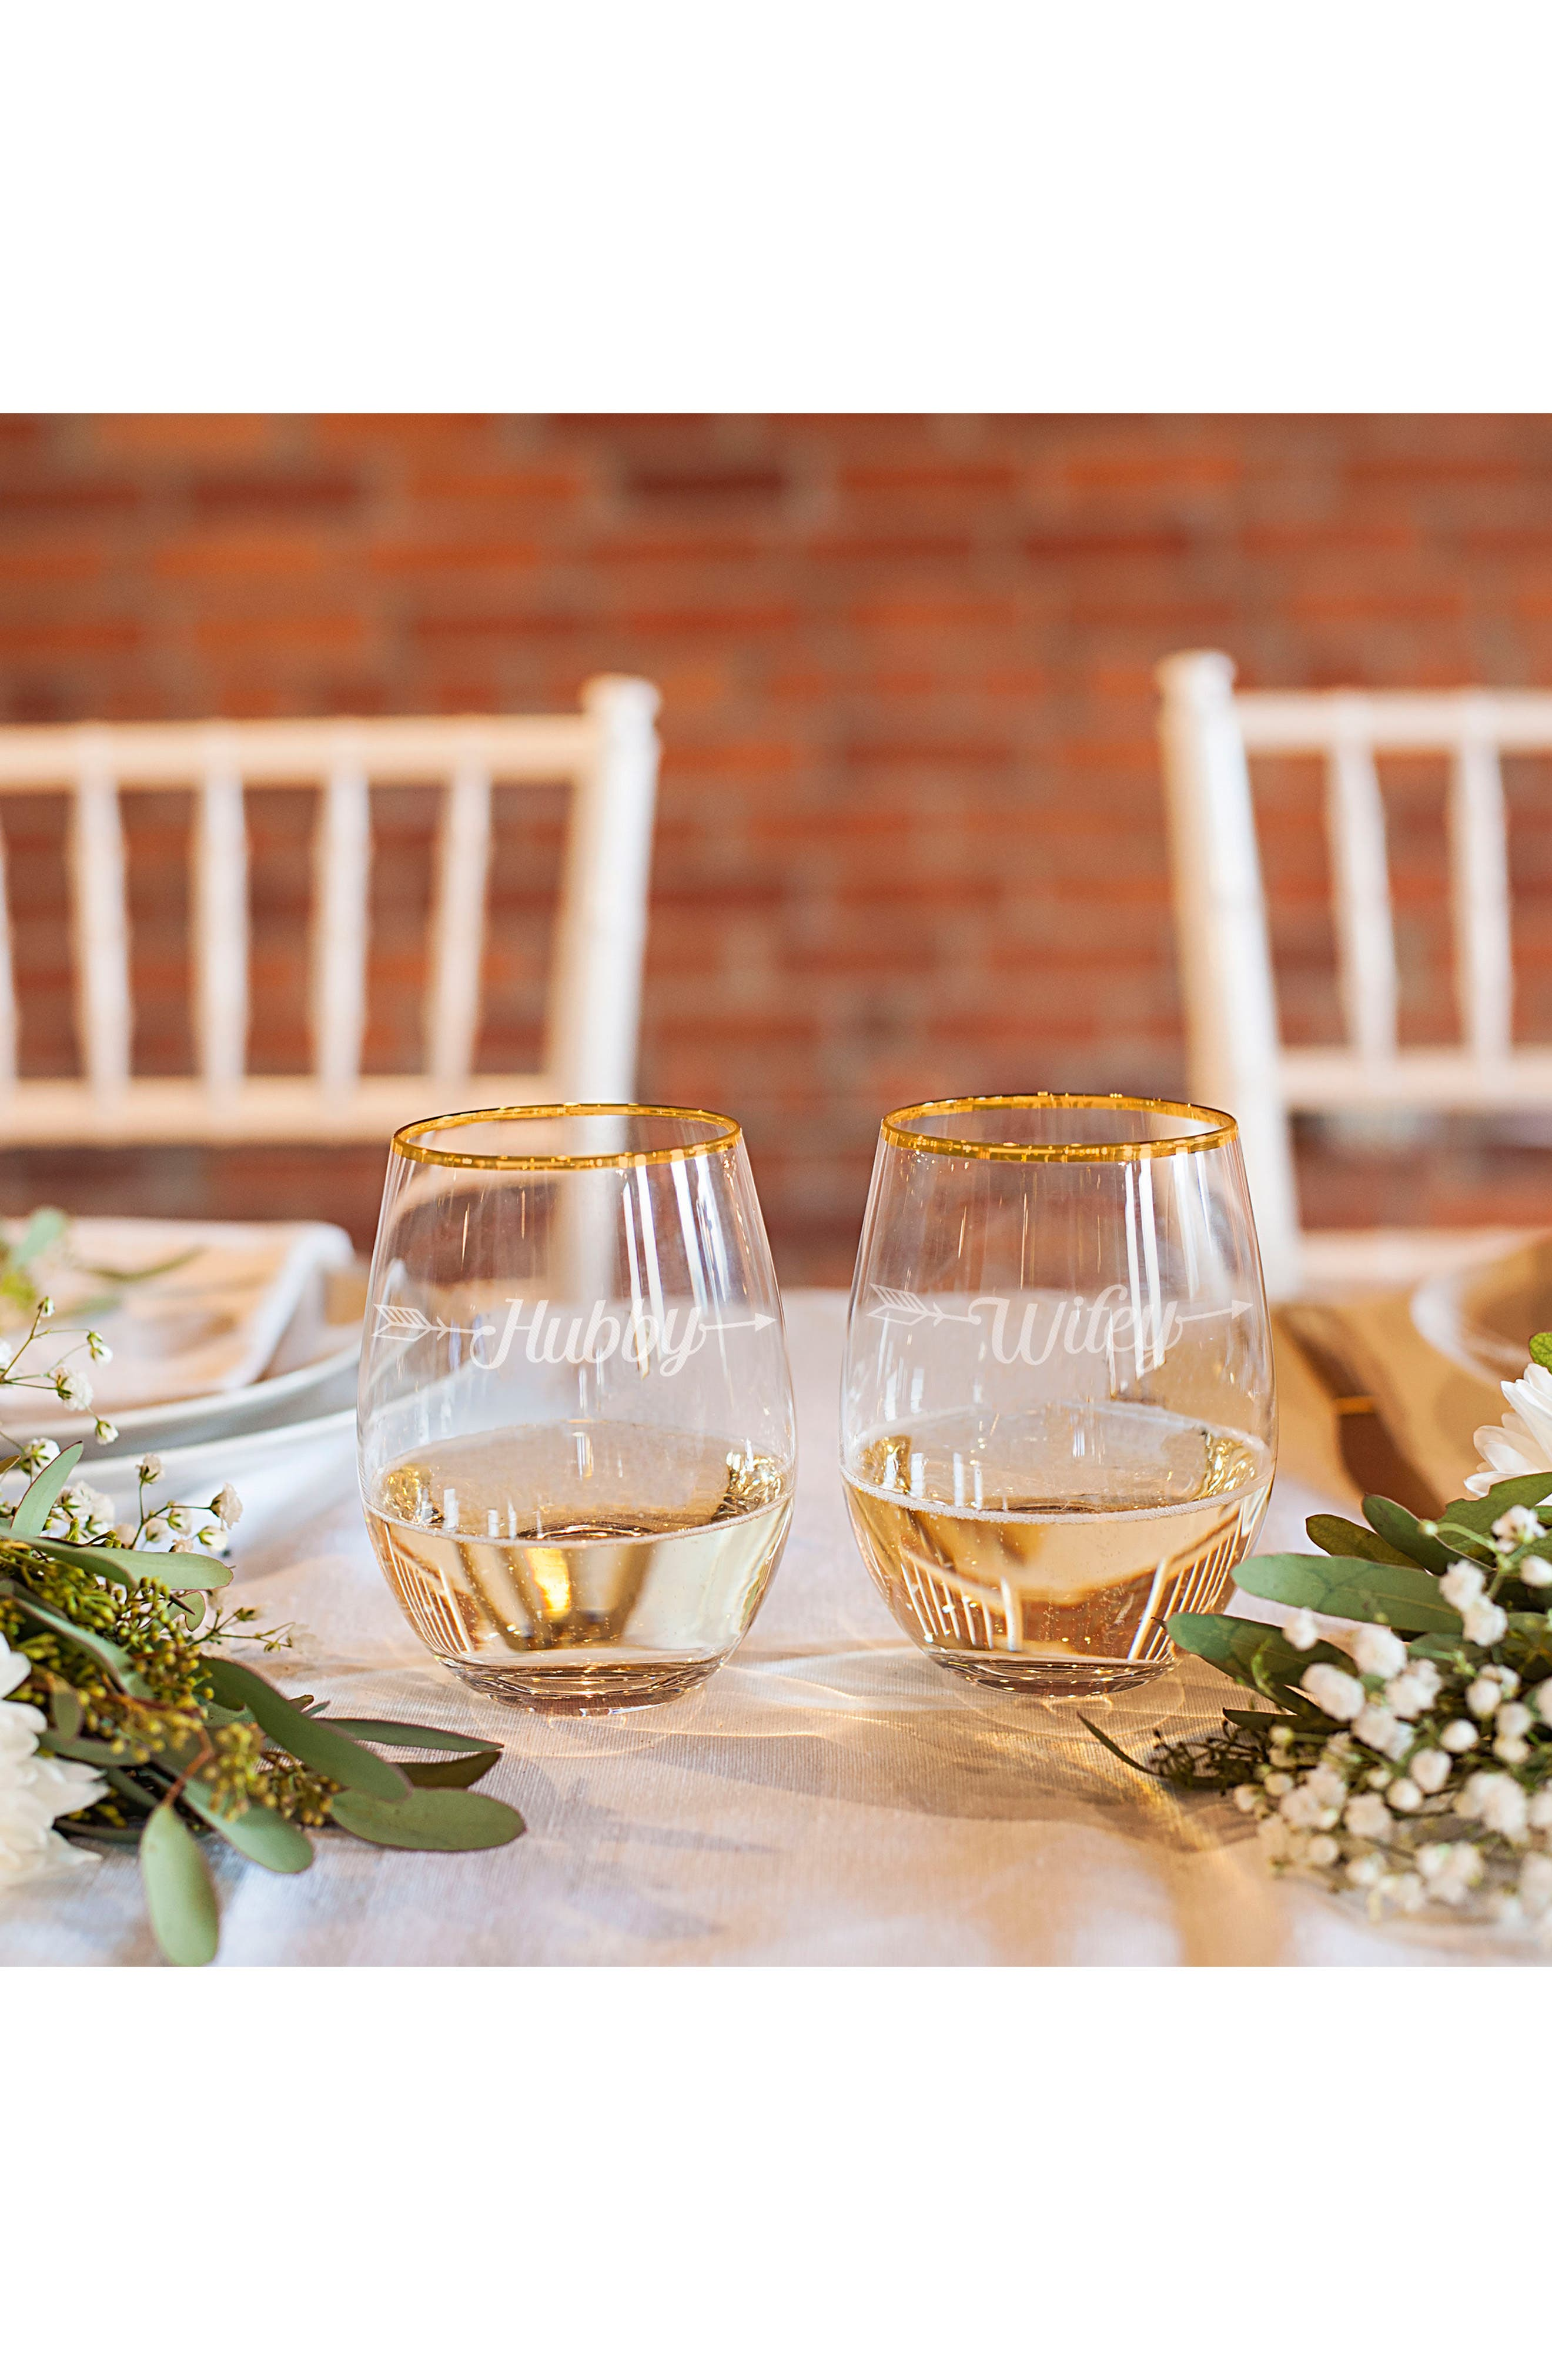 Hubby/Wifey Set of 2 Gold Rimmed Stemless Wine Glasses,                             Alternate thumbnail 4, color,                             710